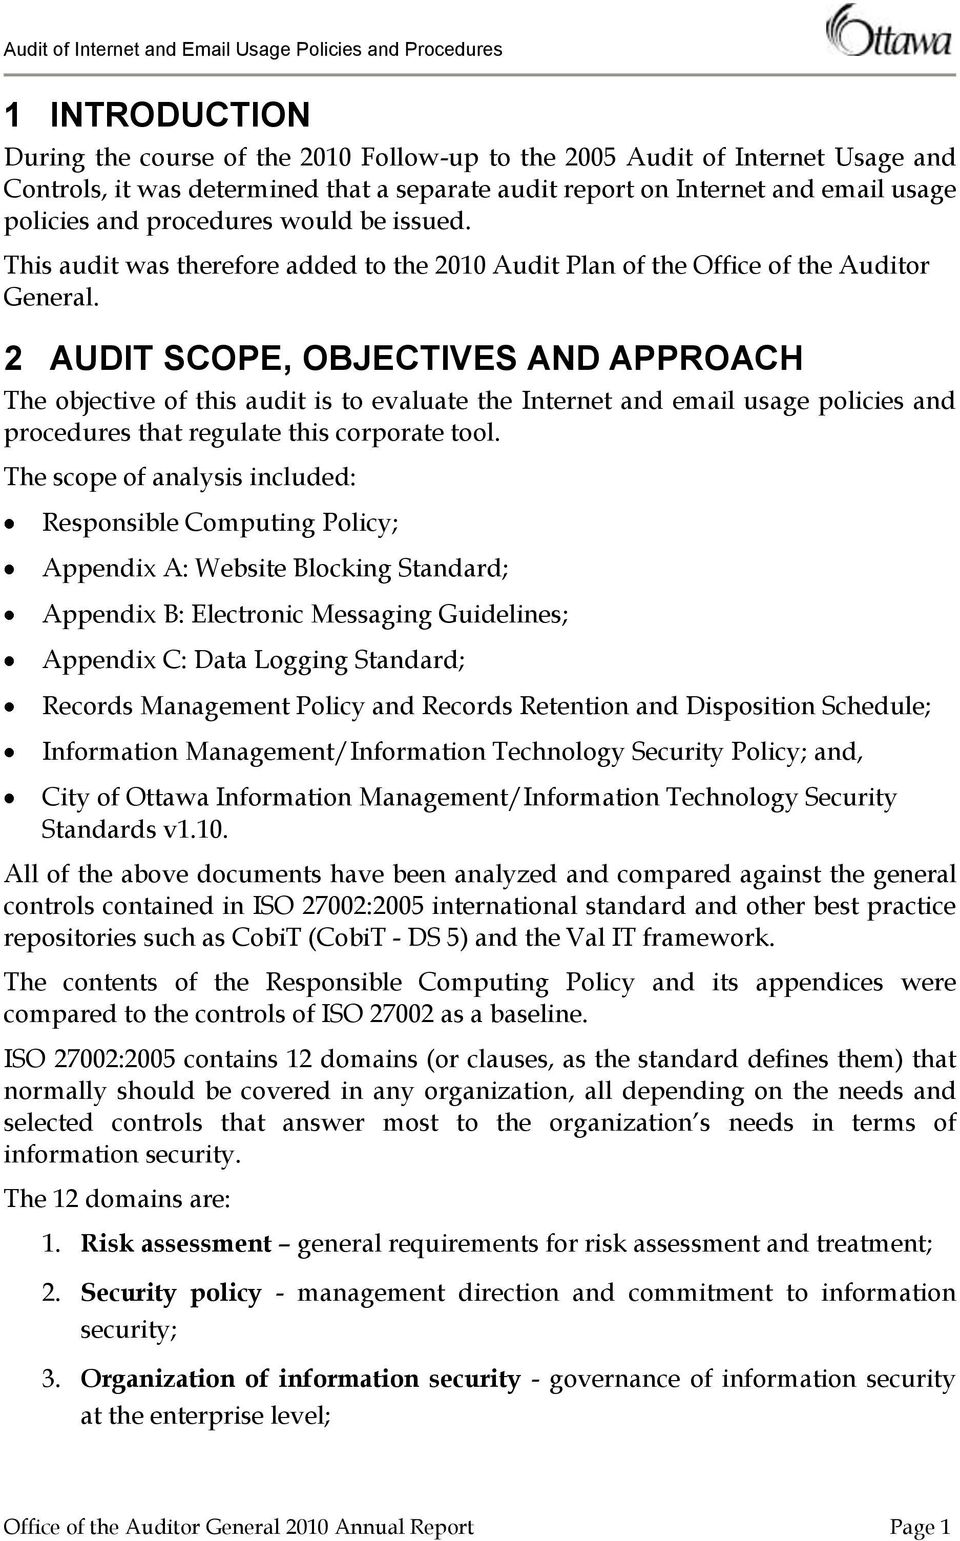 2 AUDIT SCOPE, OBJECTIVES AND APPROACH The objective of this audit is to evaluate the Internet and email usage policies and procedures that regulate this corporate tool.